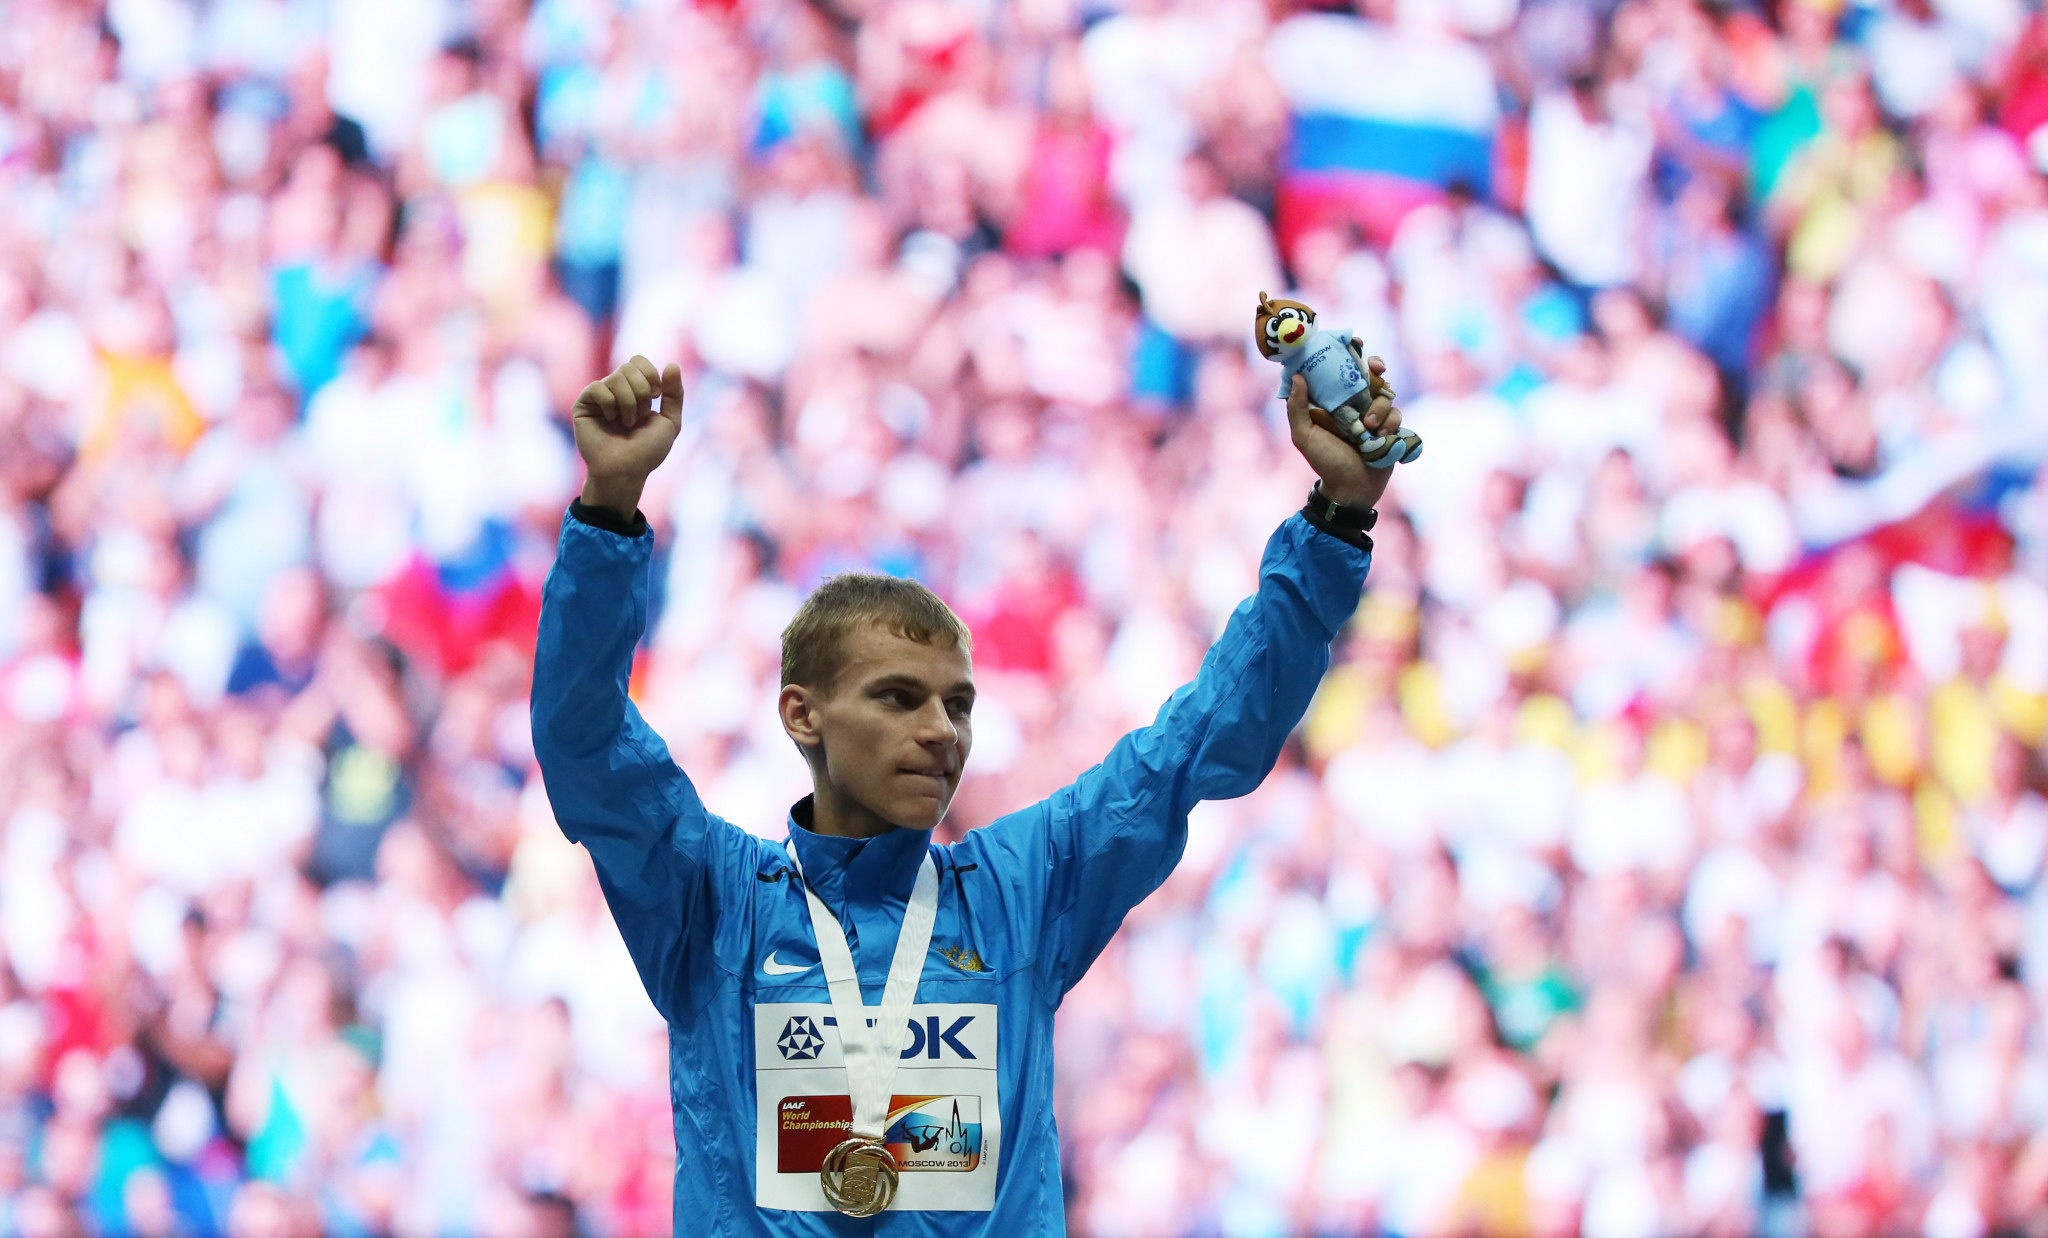 Alexandr Ivanov will lose the gold medal he won at the 2013 IAAF World Championships ©Getty Images